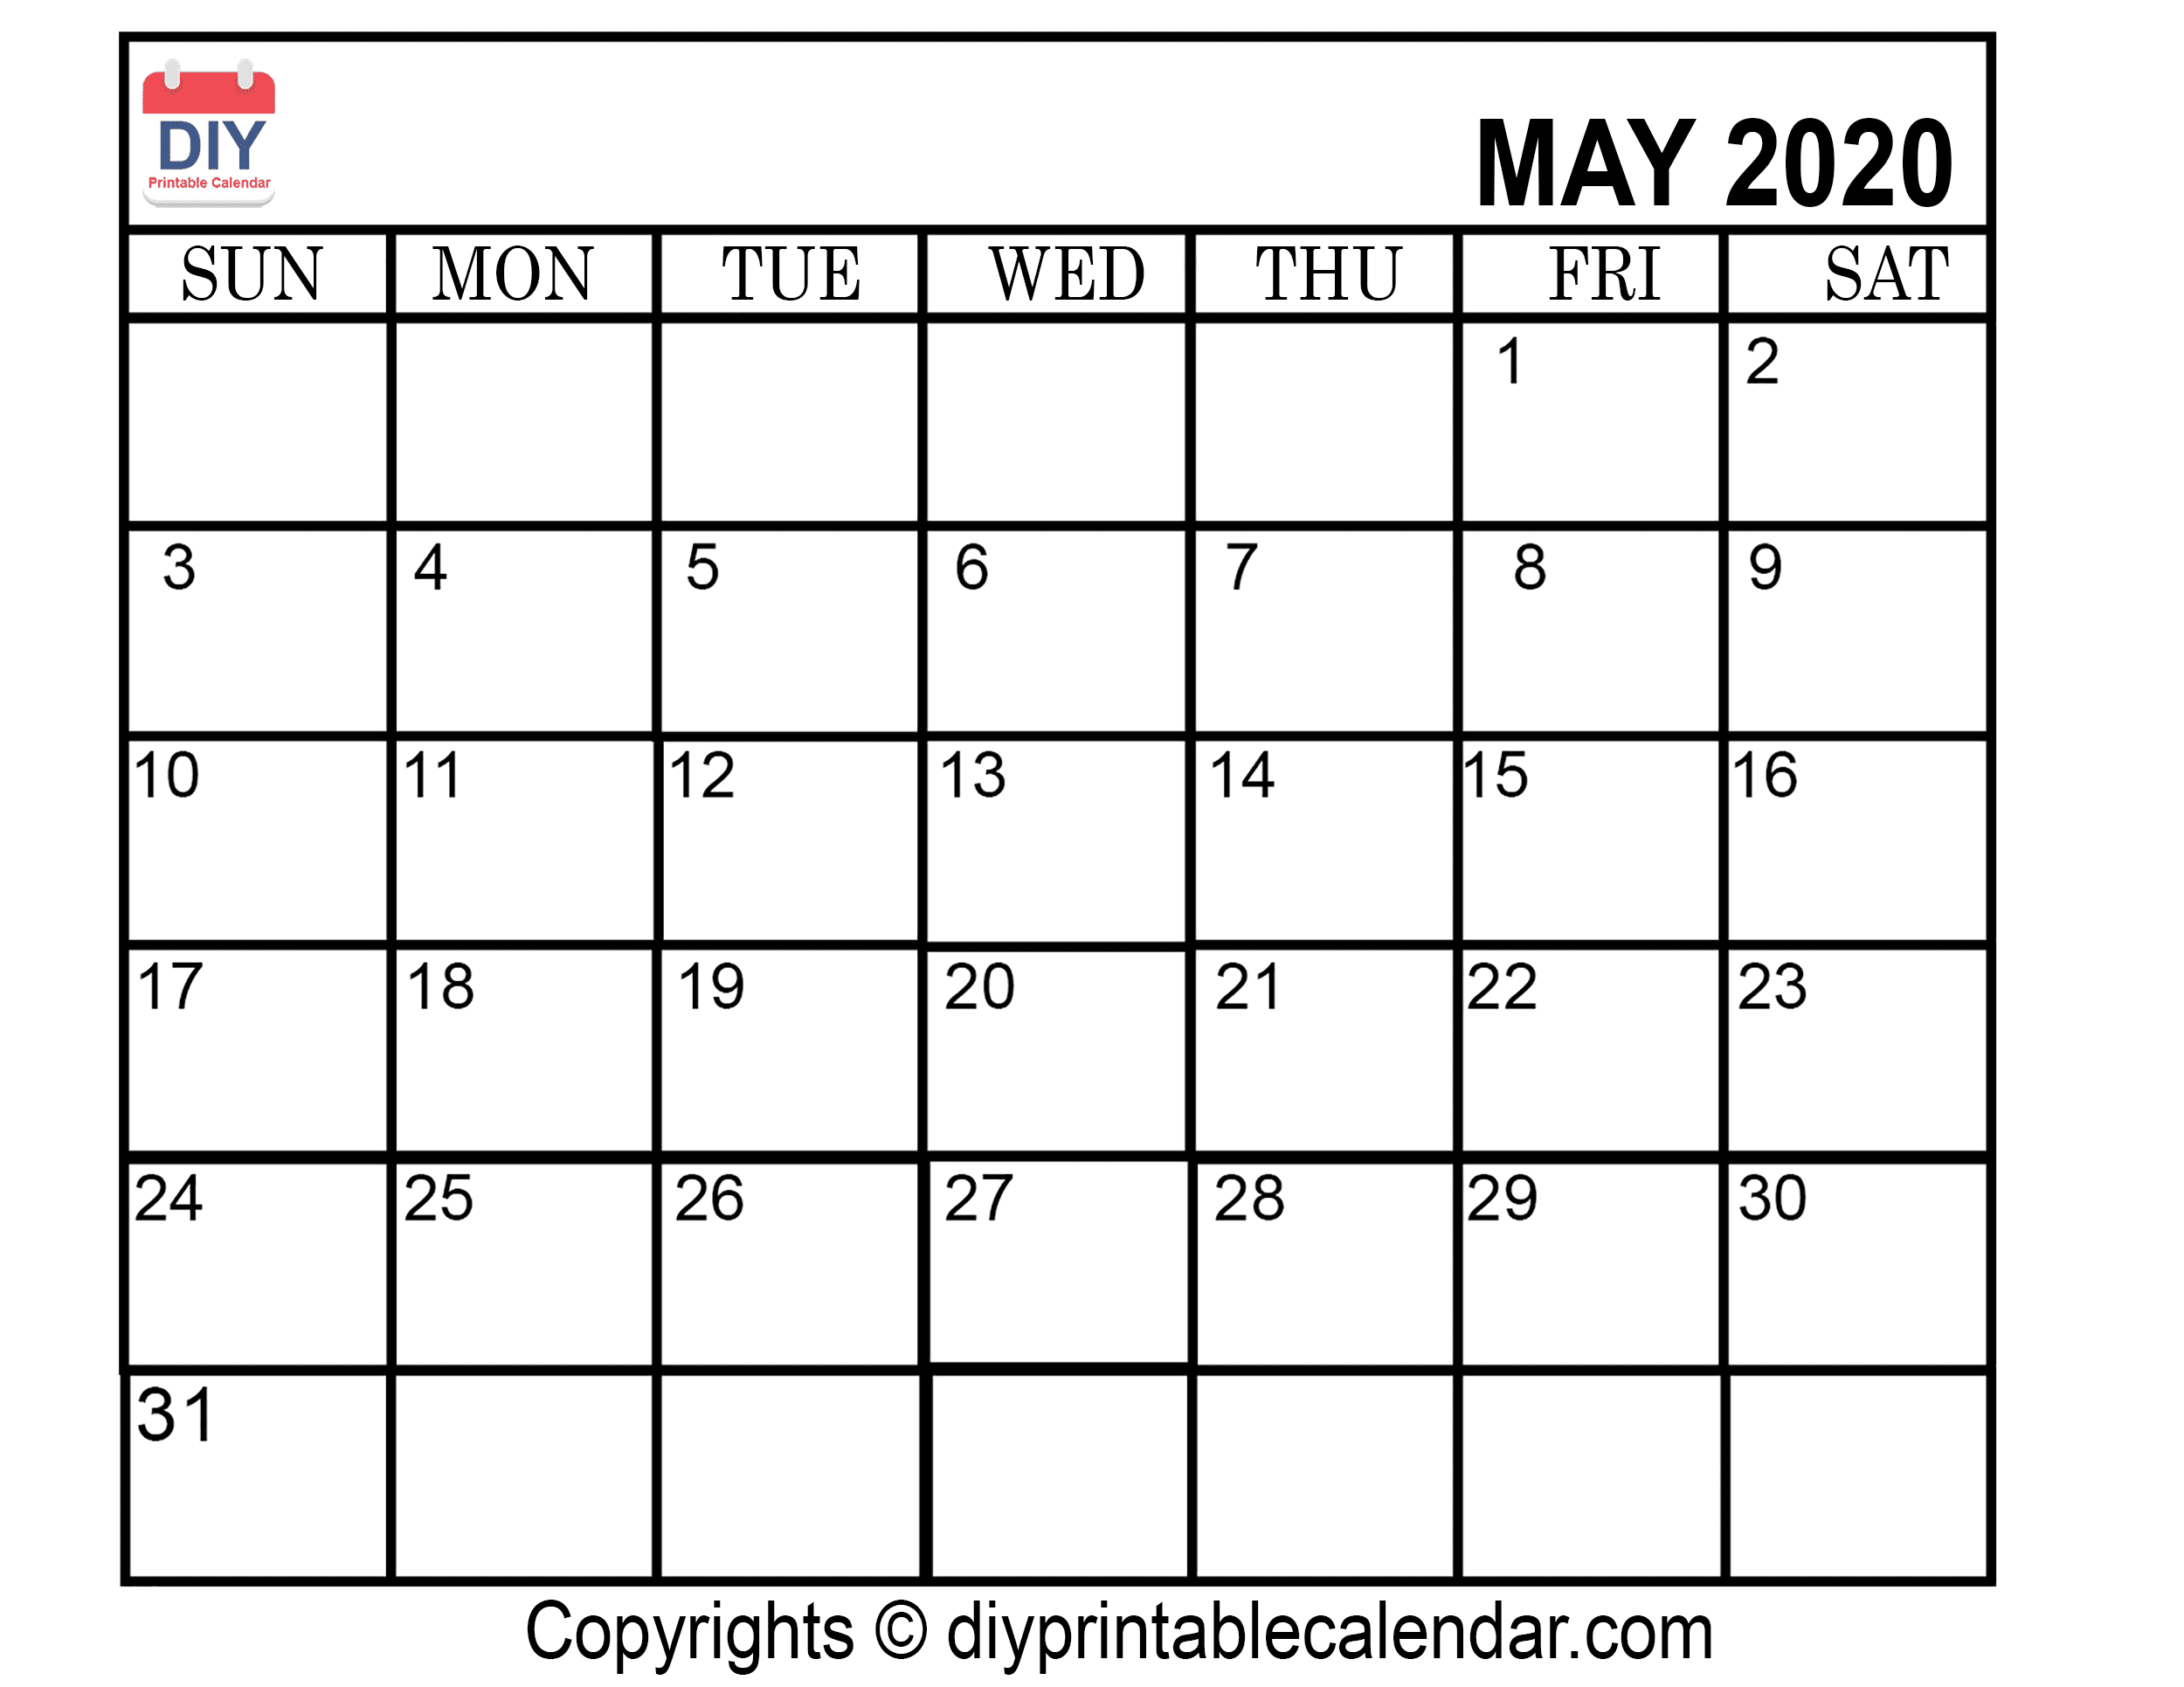 Download May 2020 Printable Calendar